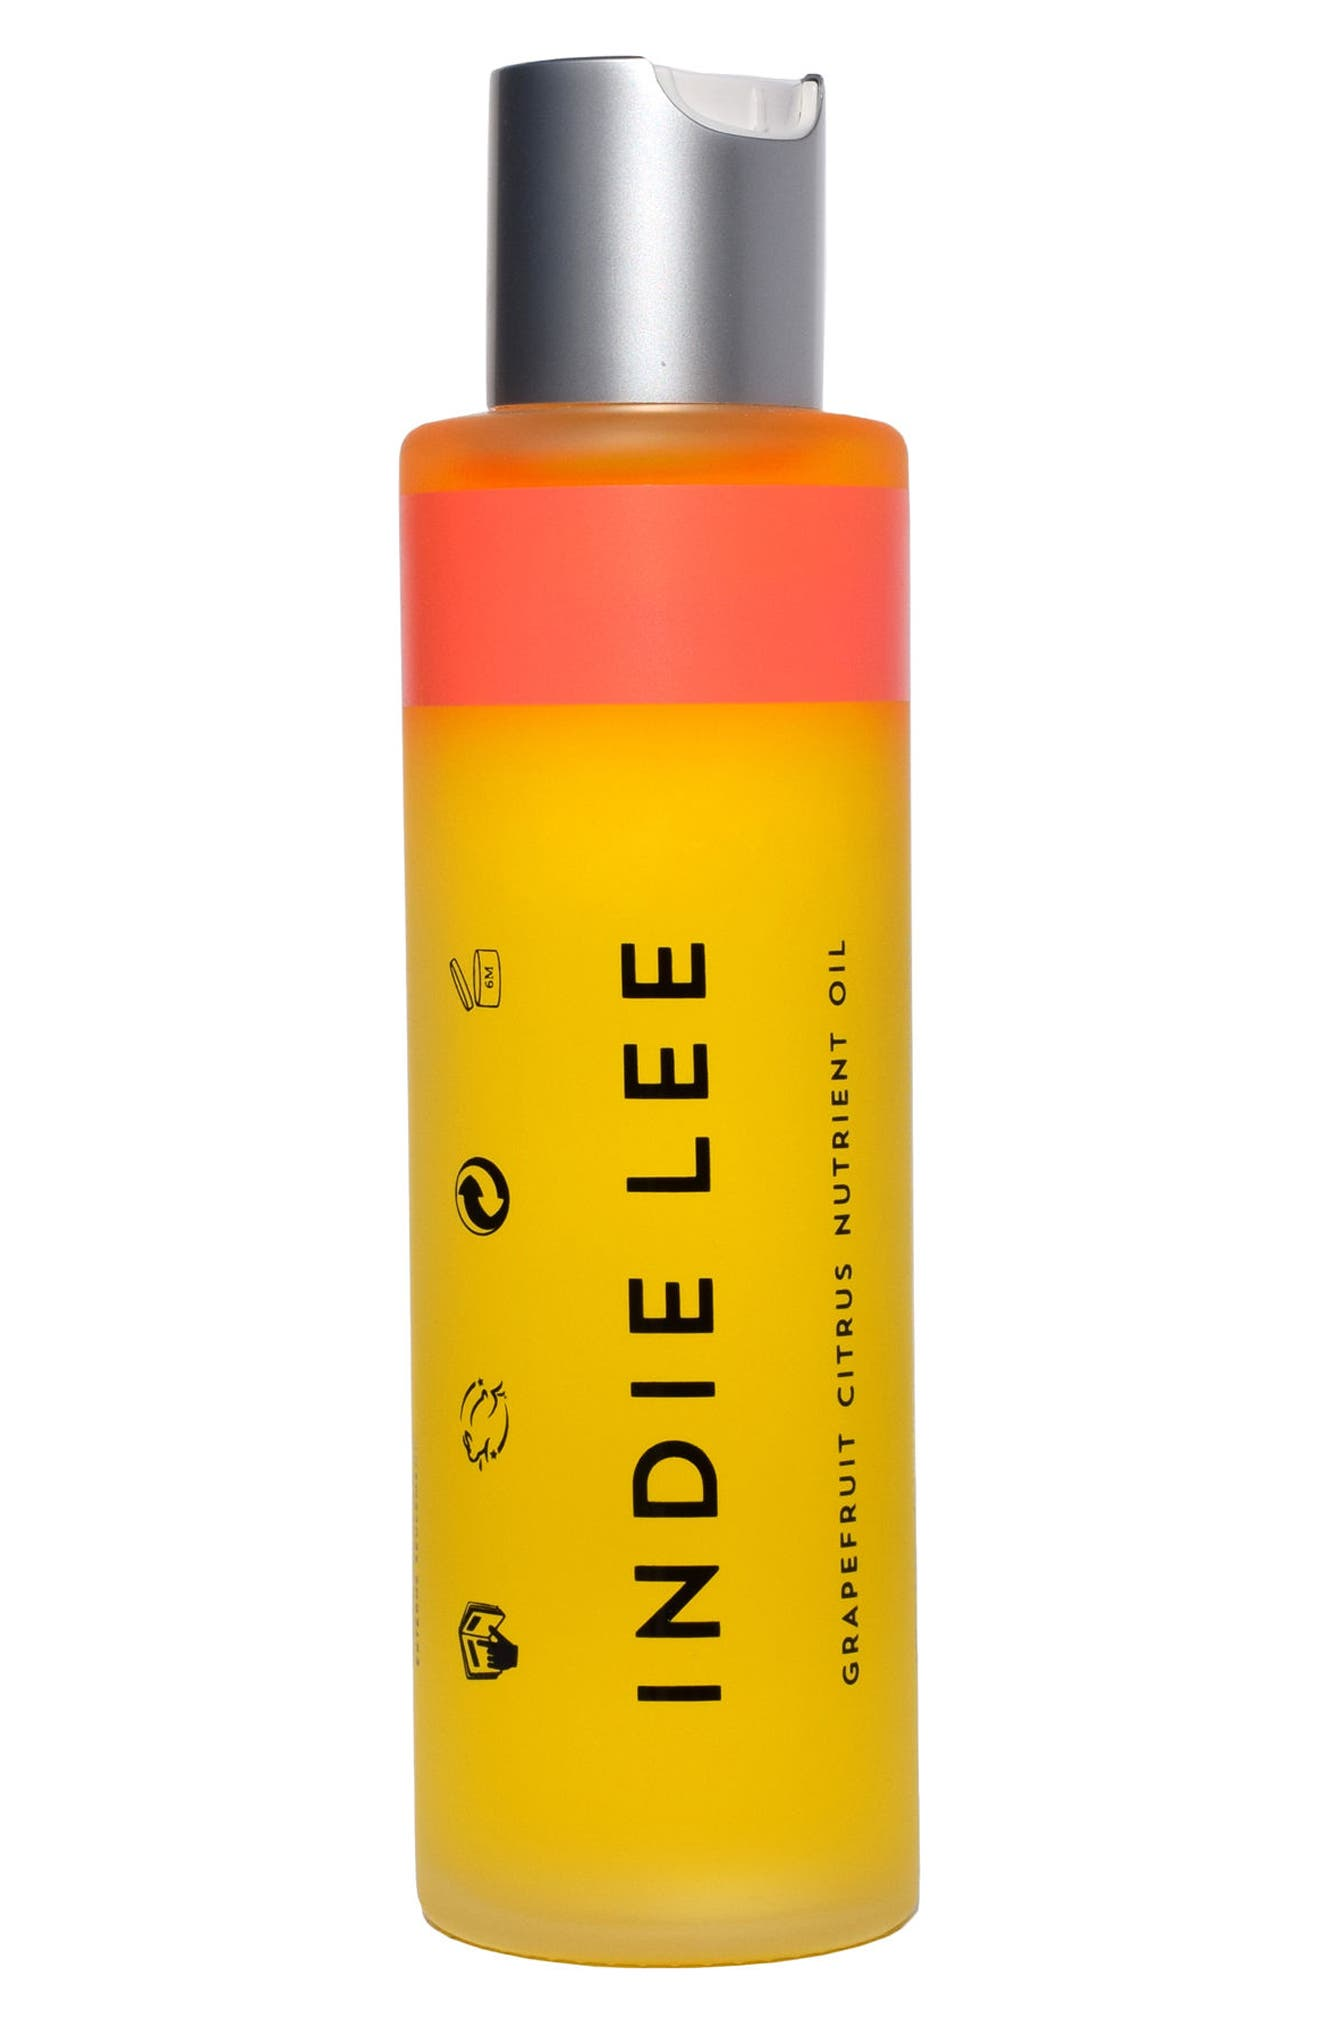 Indie Lee Grapefruit Citrus Nutrient Oil